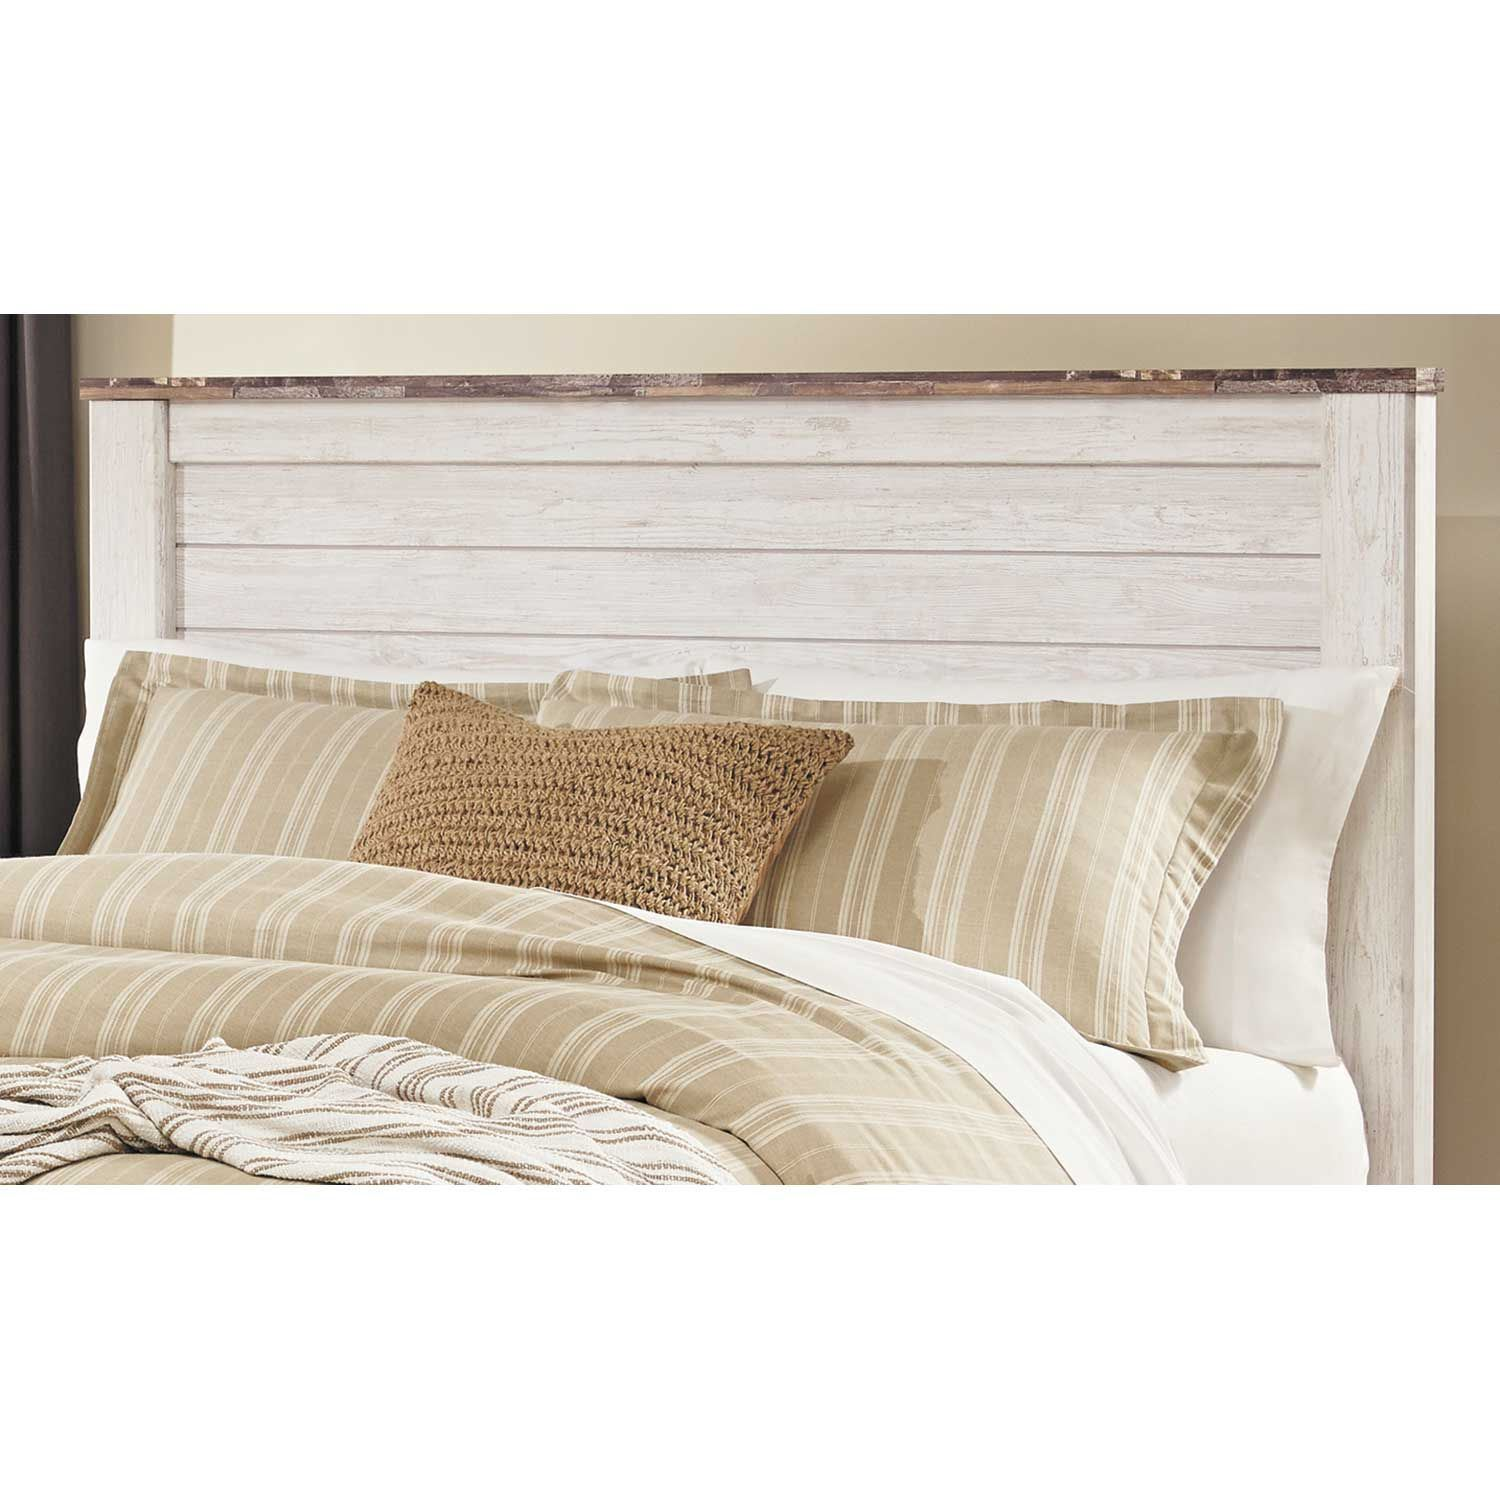 Picture of Willowton King Panel Headboard